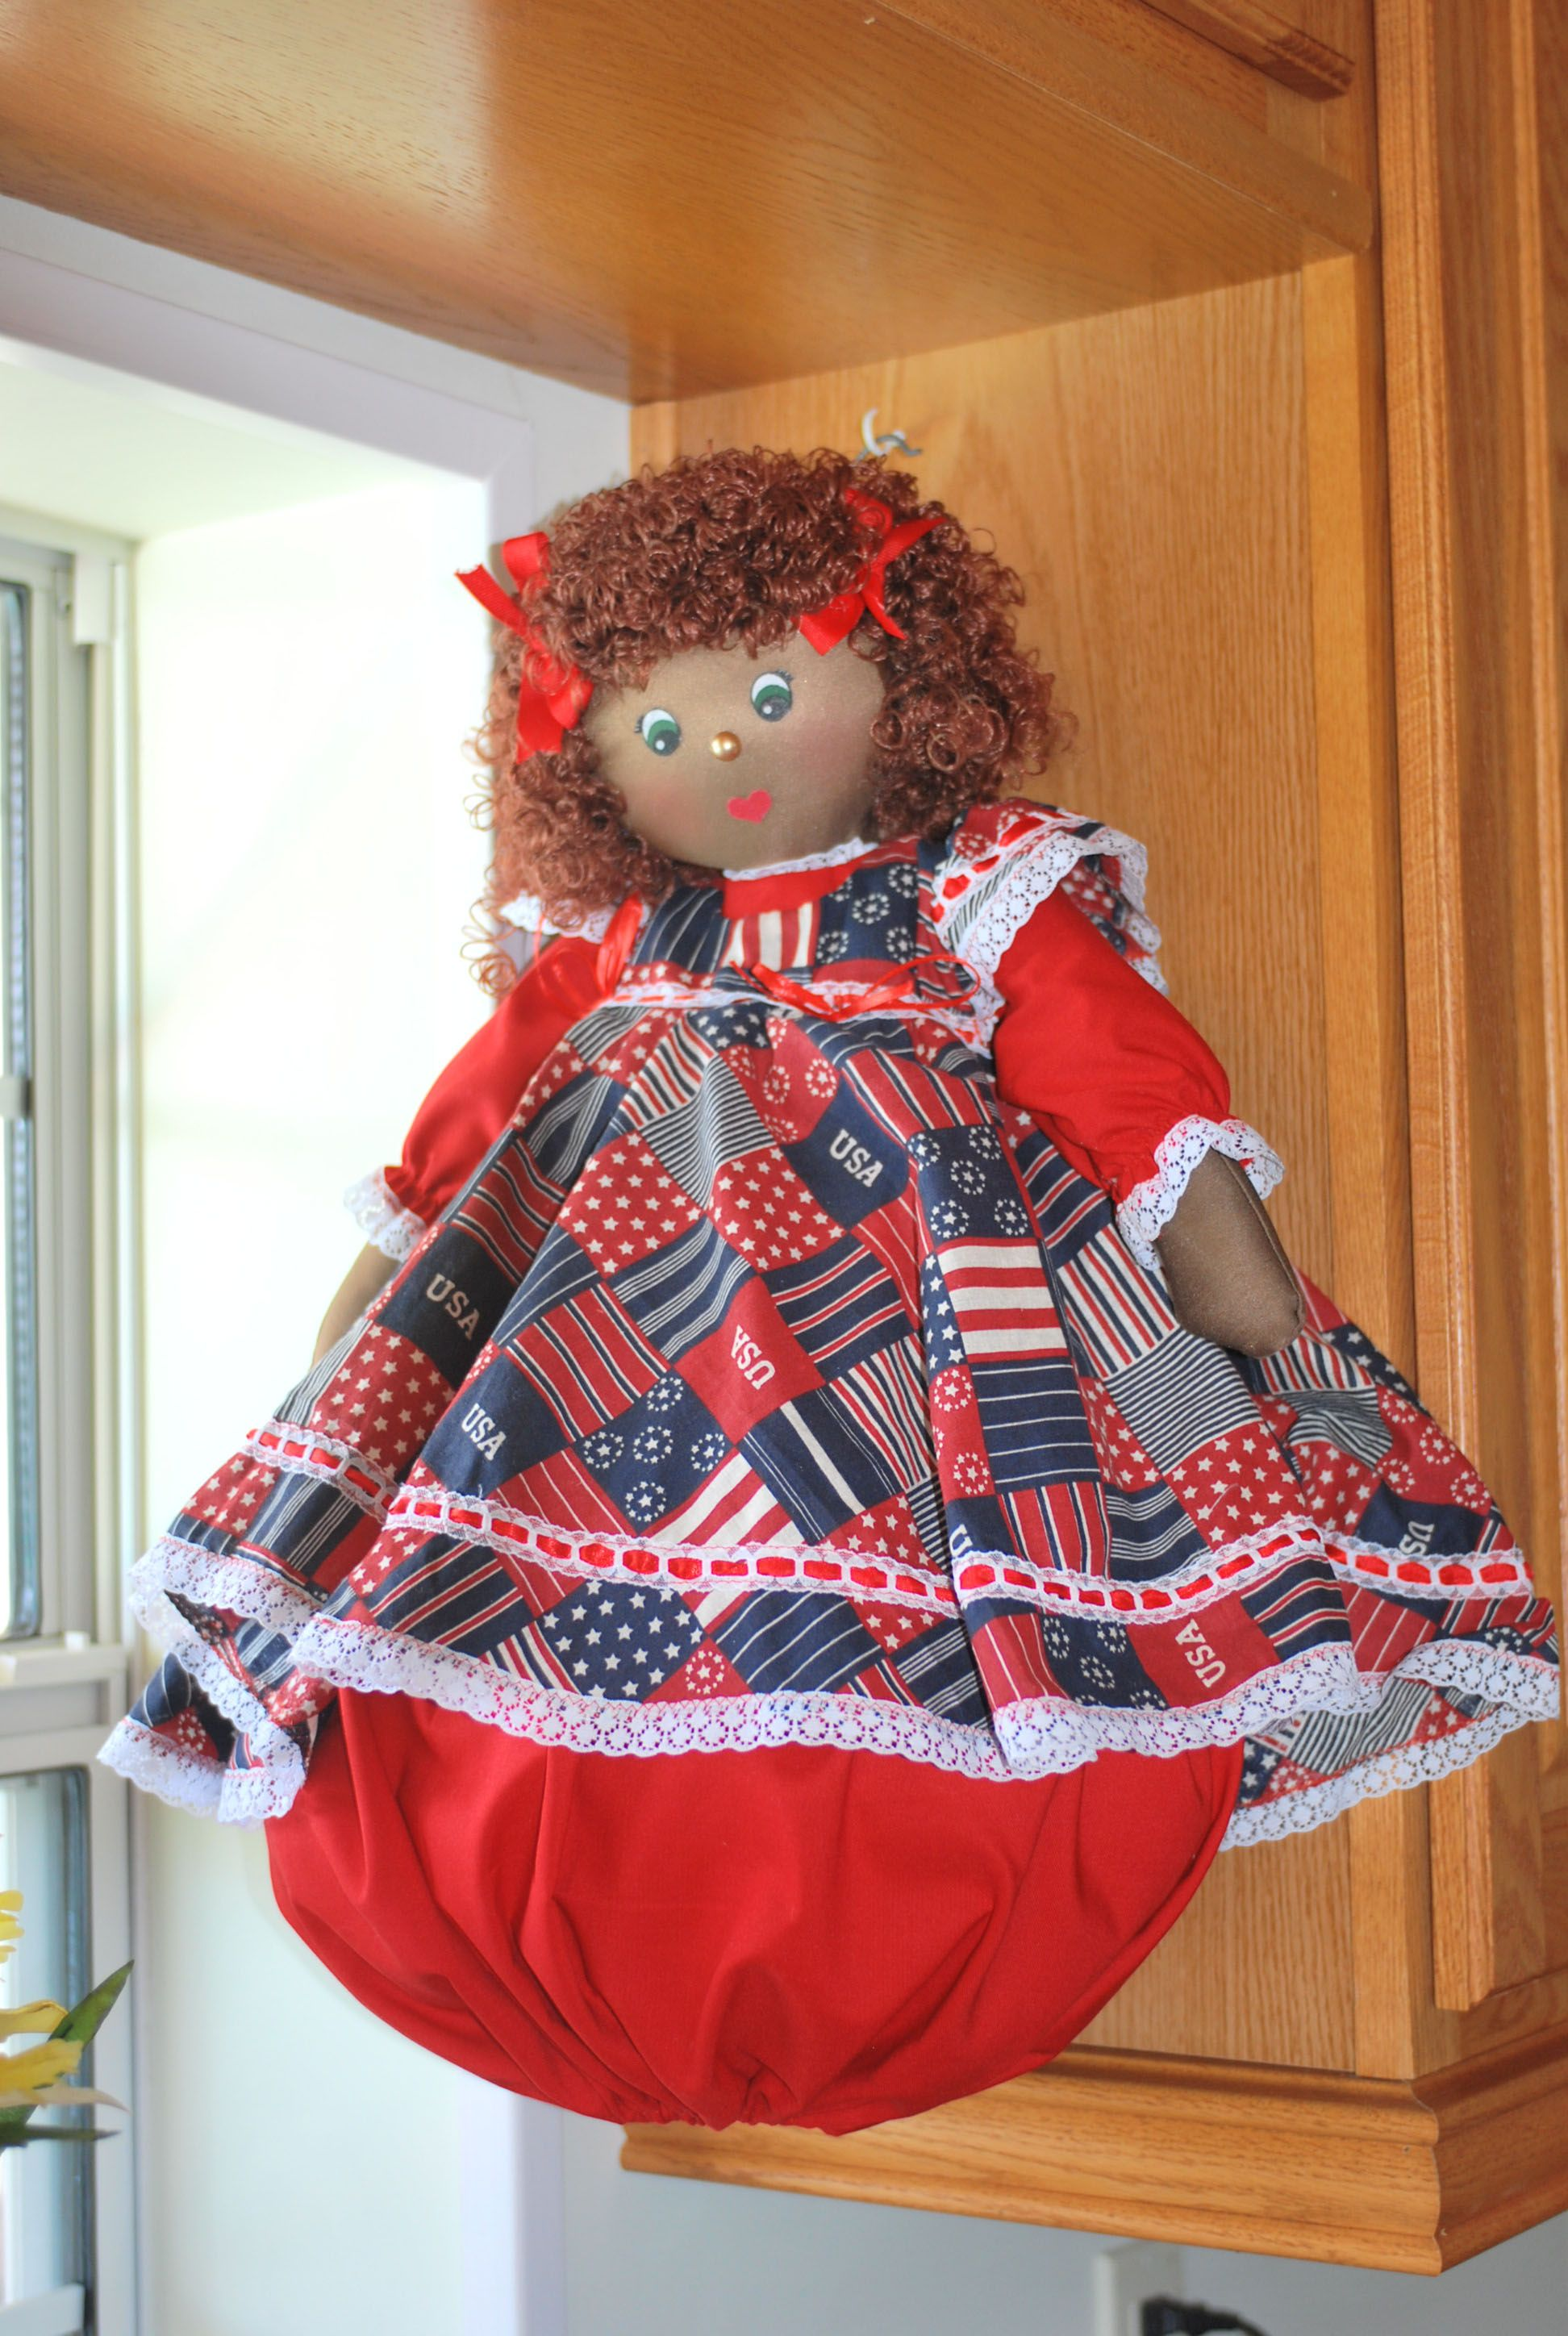 This is Hailey, she is Hand plastic bag holder doll, made in Costa Rica with great detail and materials. Her dress sports a USA theme. http://bagdollia.com/product/hailey/